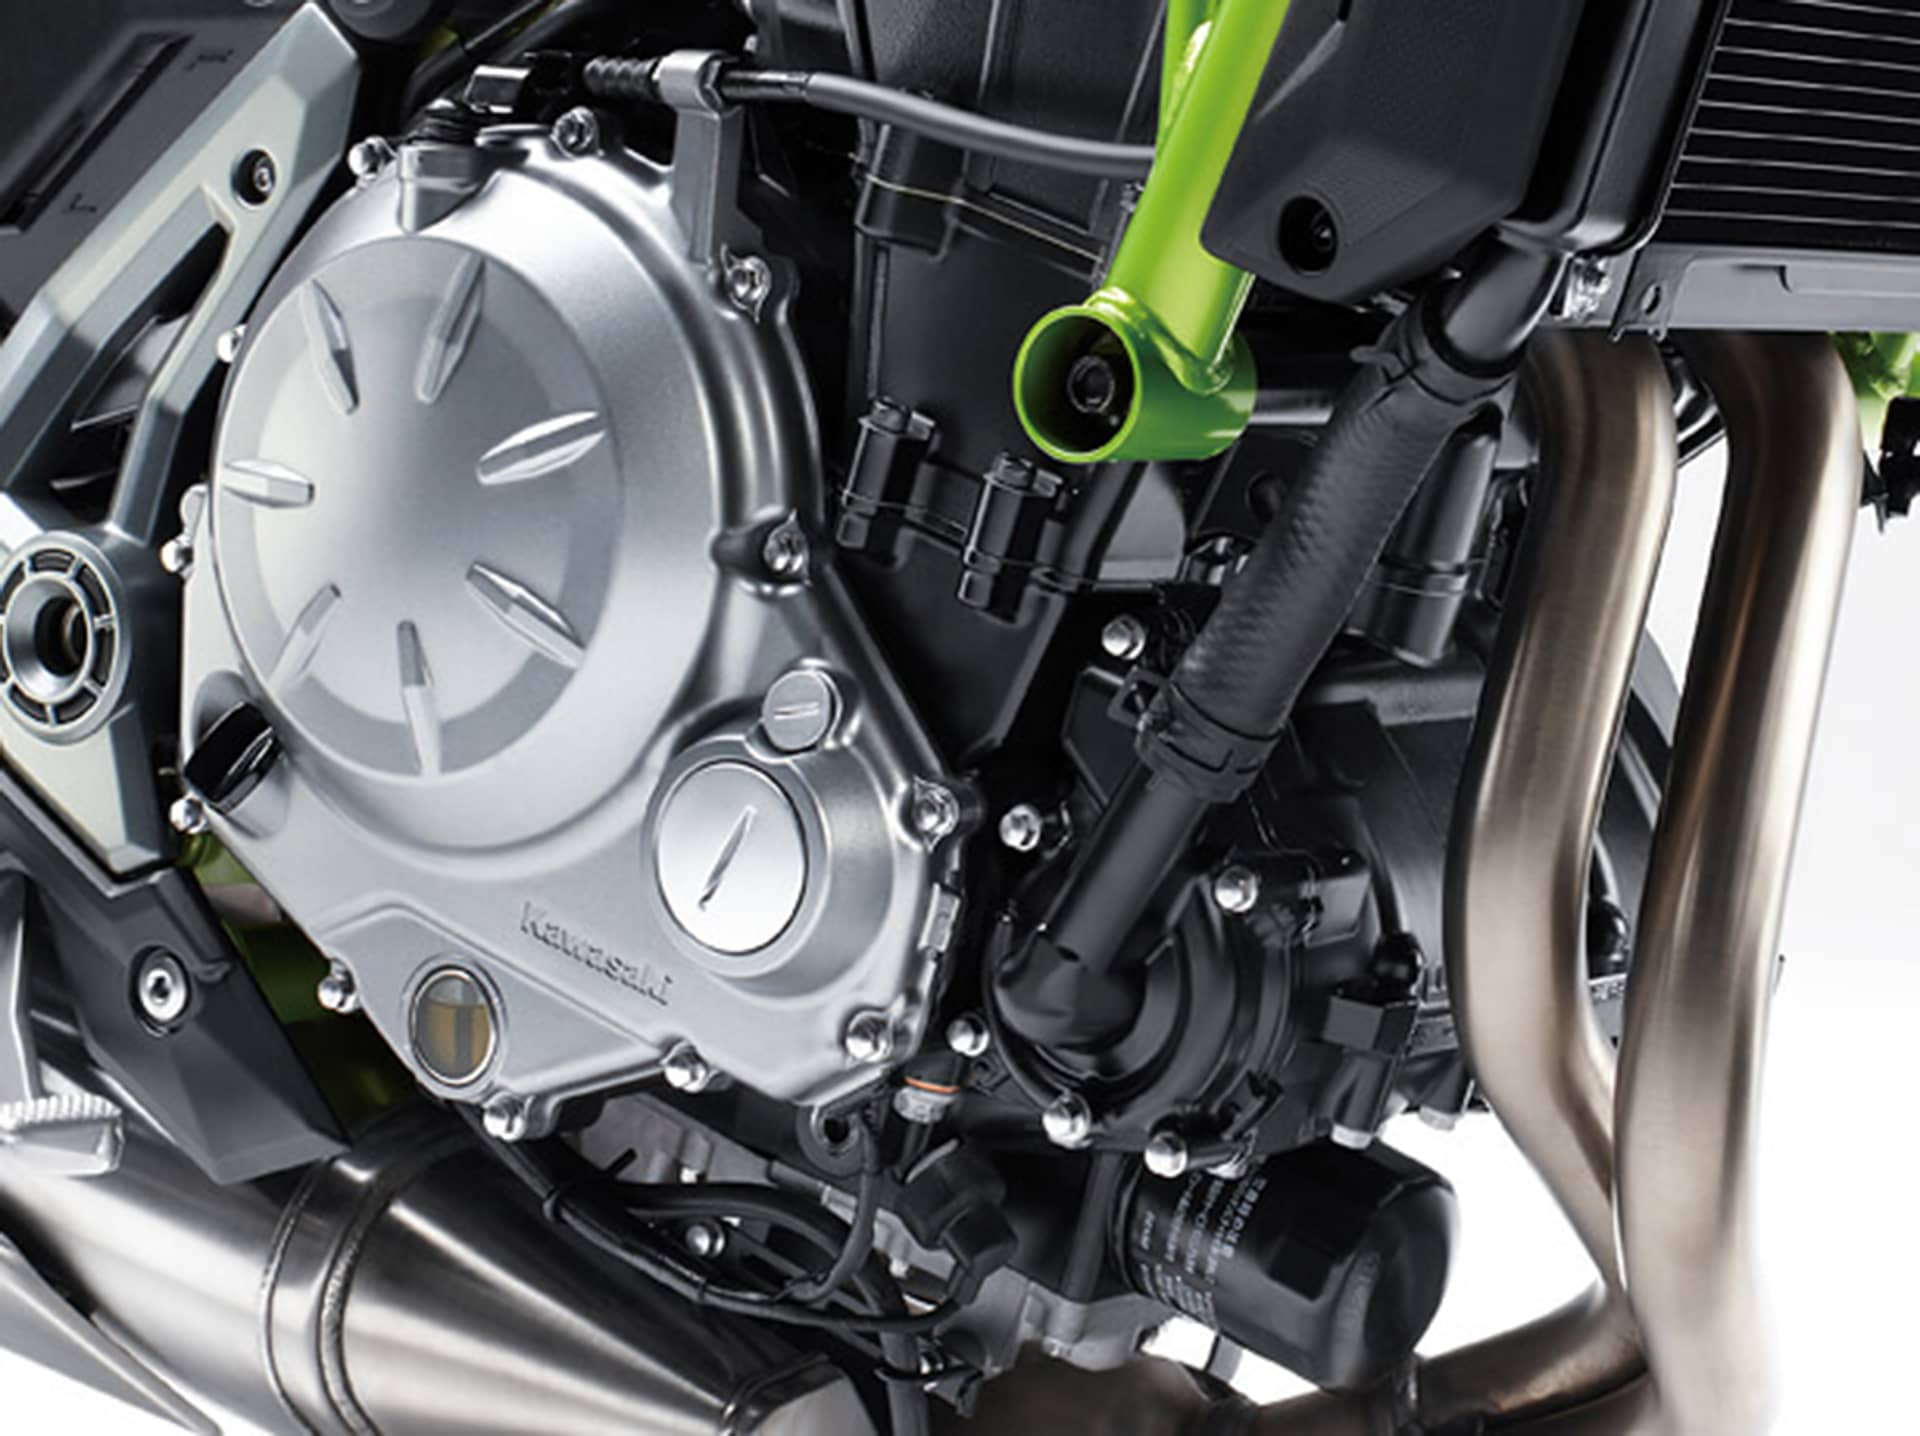 z650_topfeature_engine